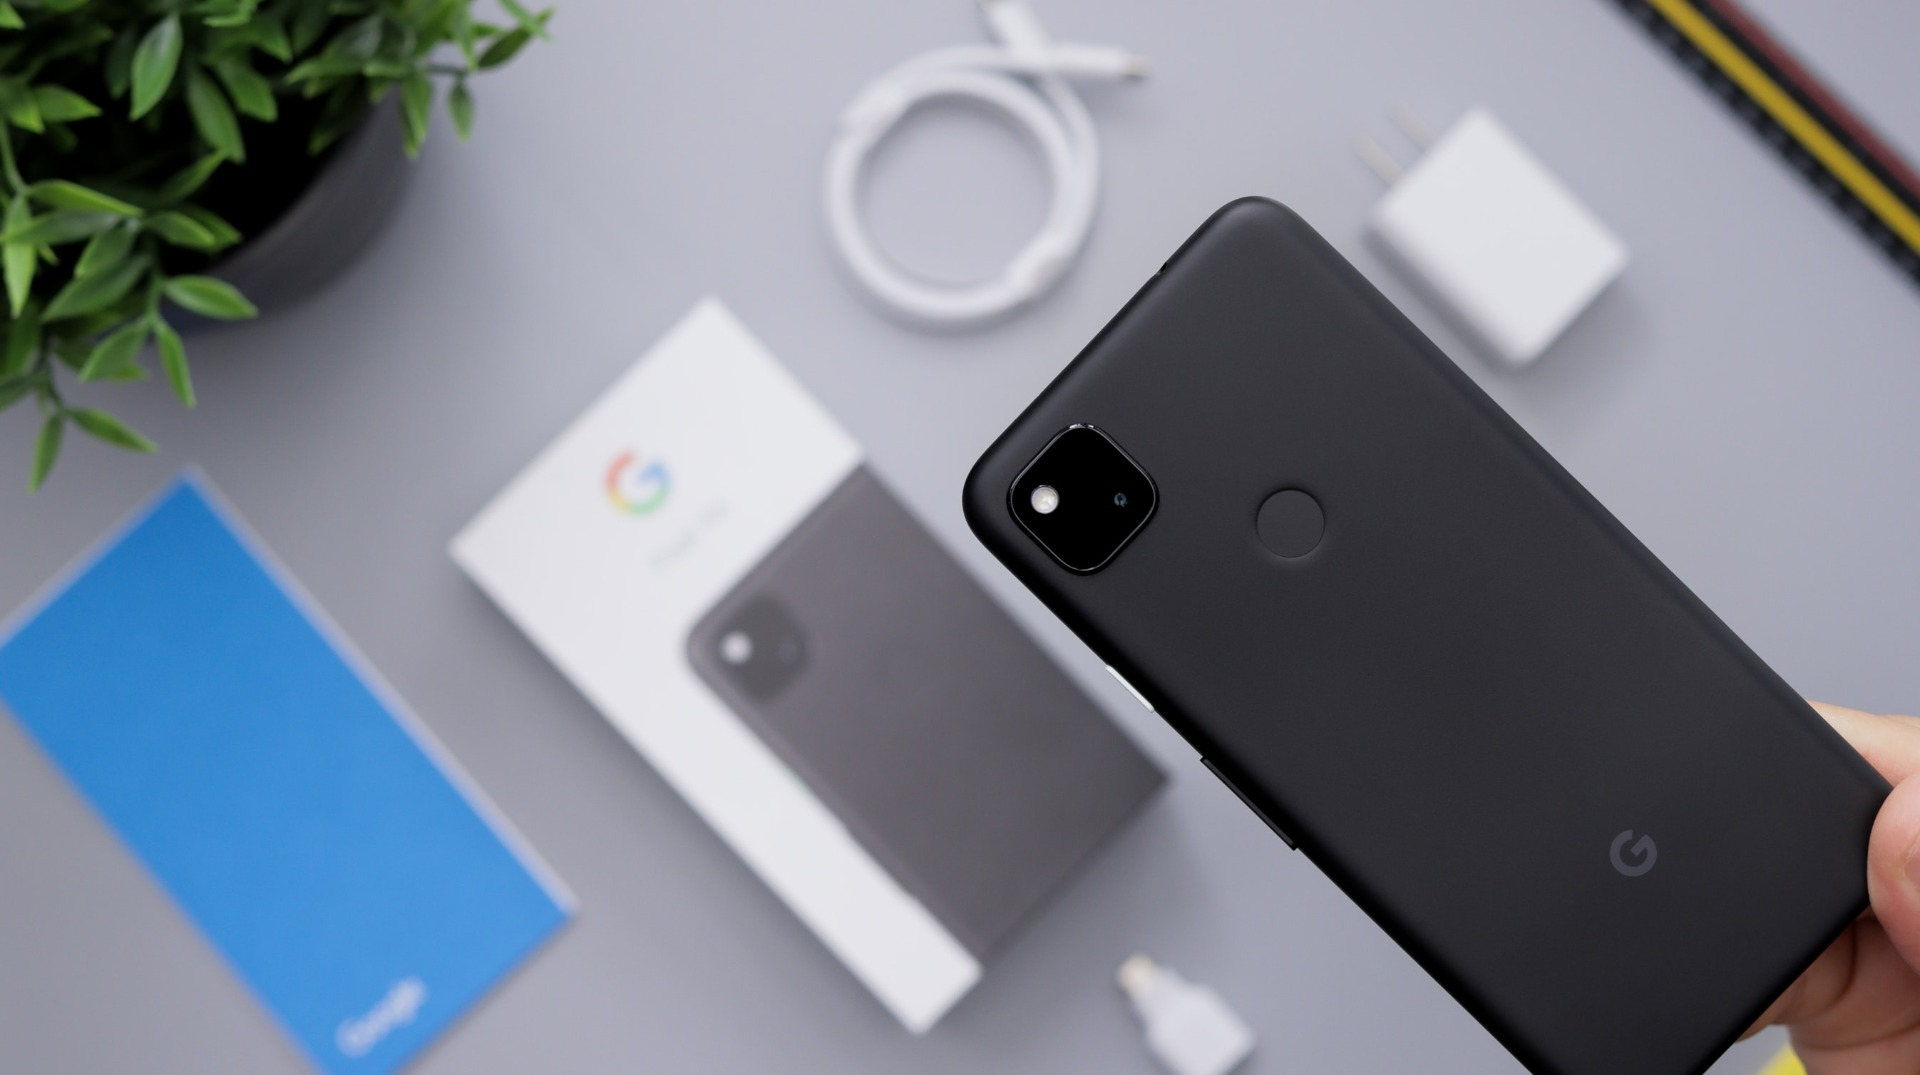 A Pixel 4a with the box